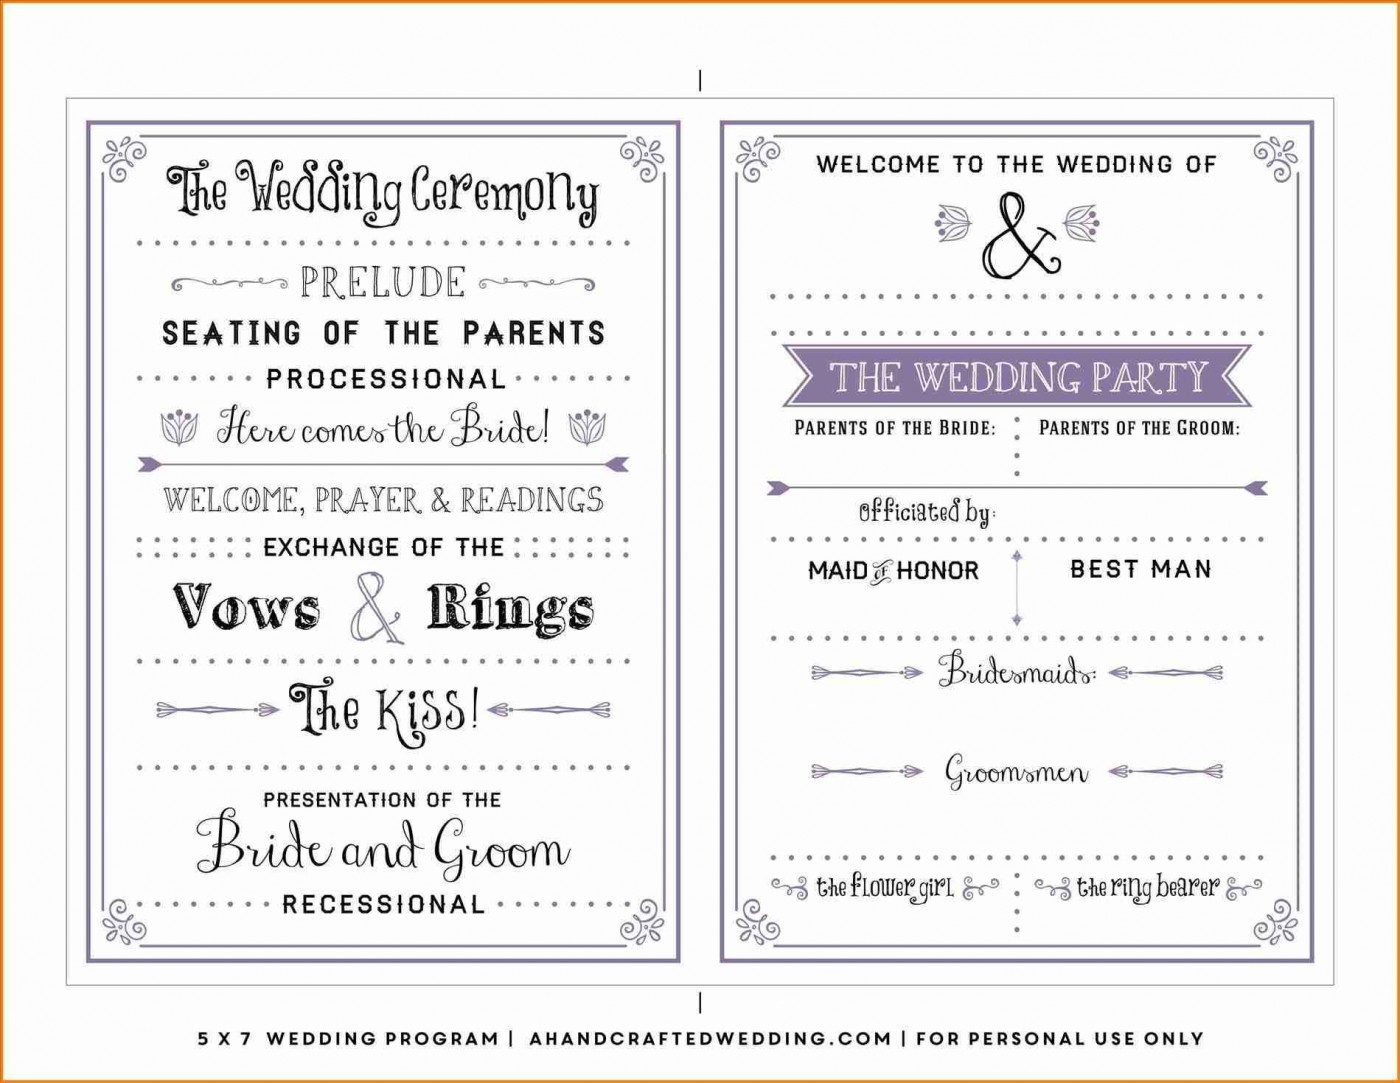 002 Incredible Wedding Template For Word Design  Free Invitation Indian Hindu In Marathi1400